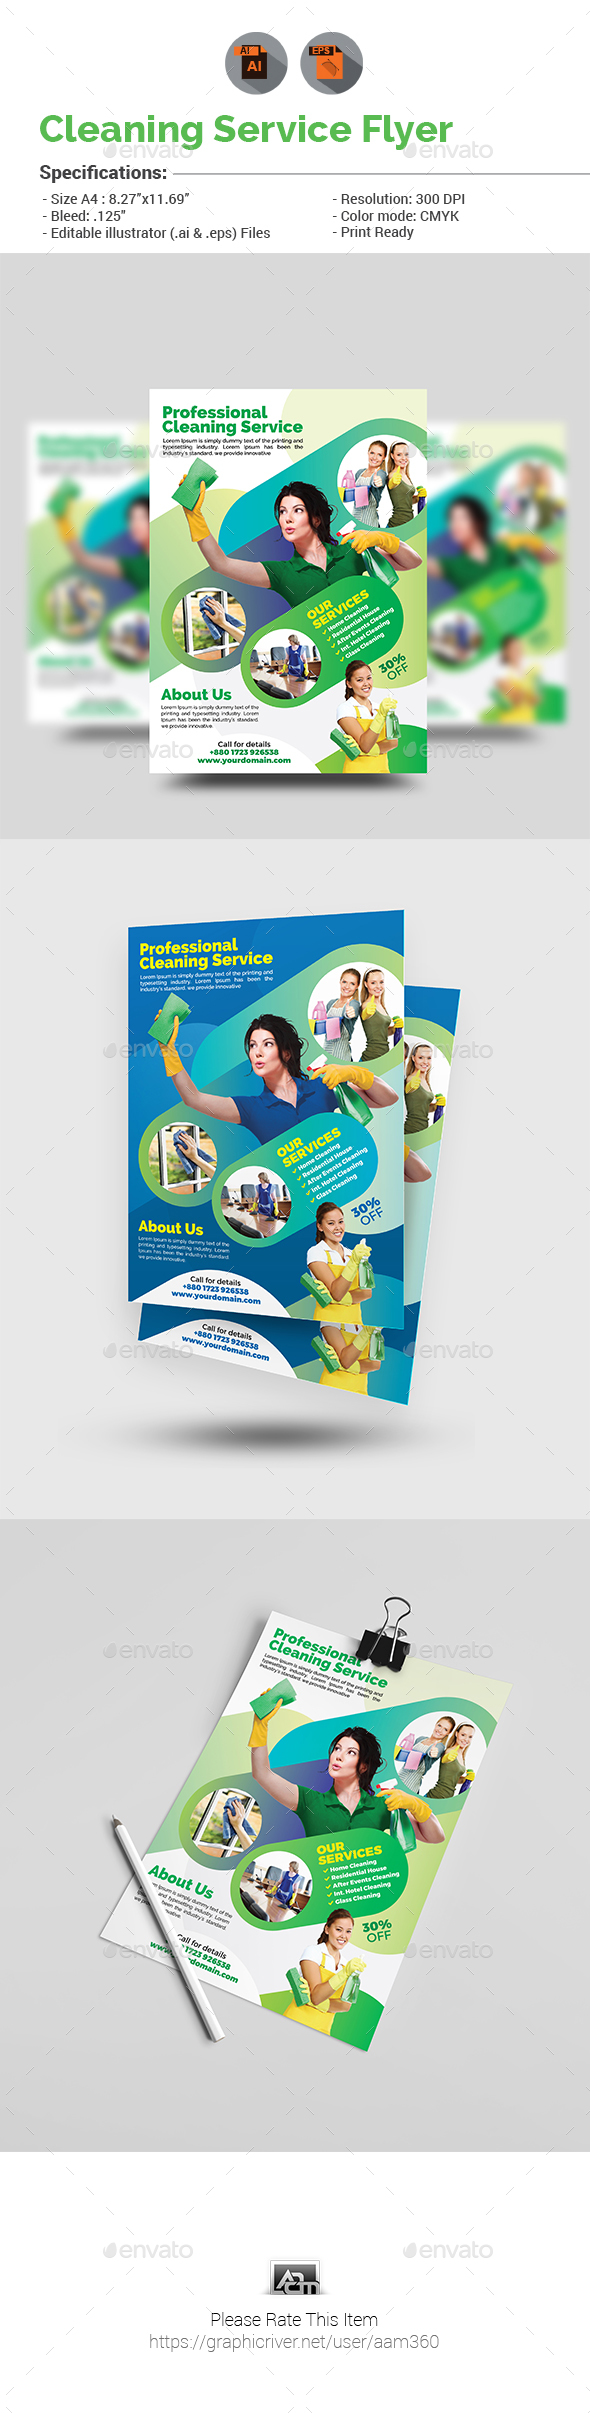 Cleaning Services Flyer   Cleaning service, Flyer template and Template